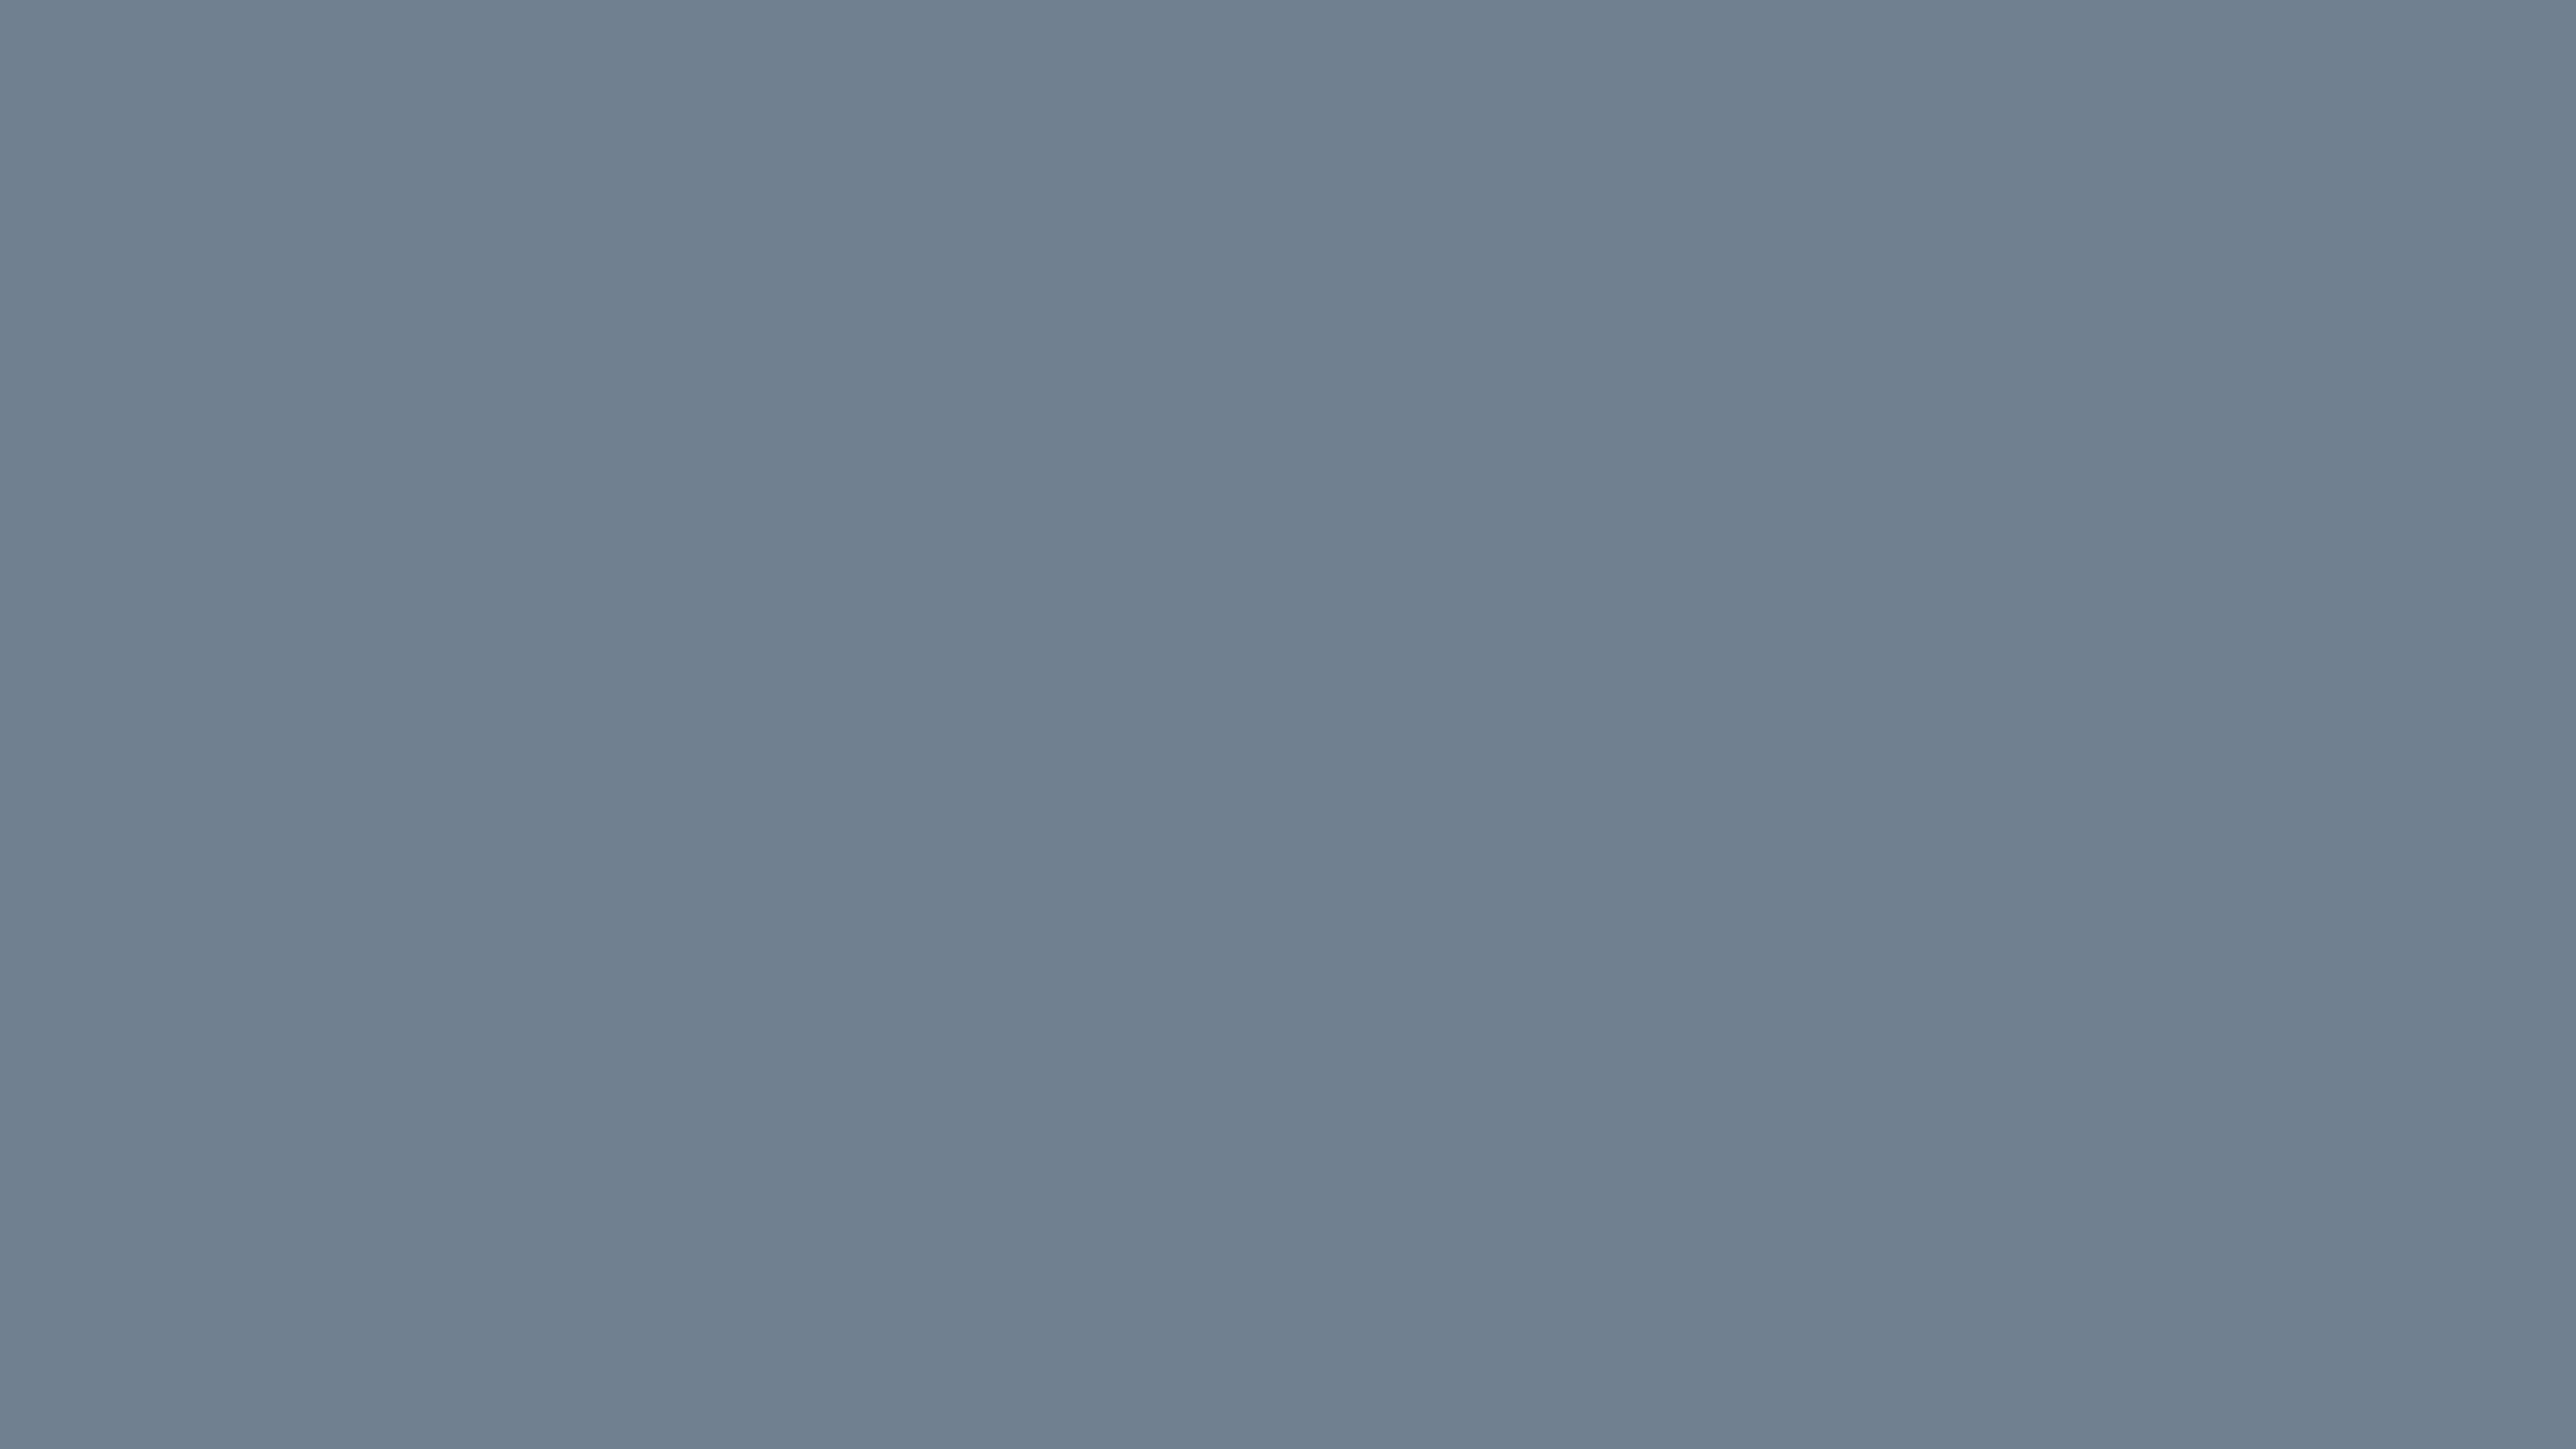 4096x2304 Slate Gray Solid Color Background